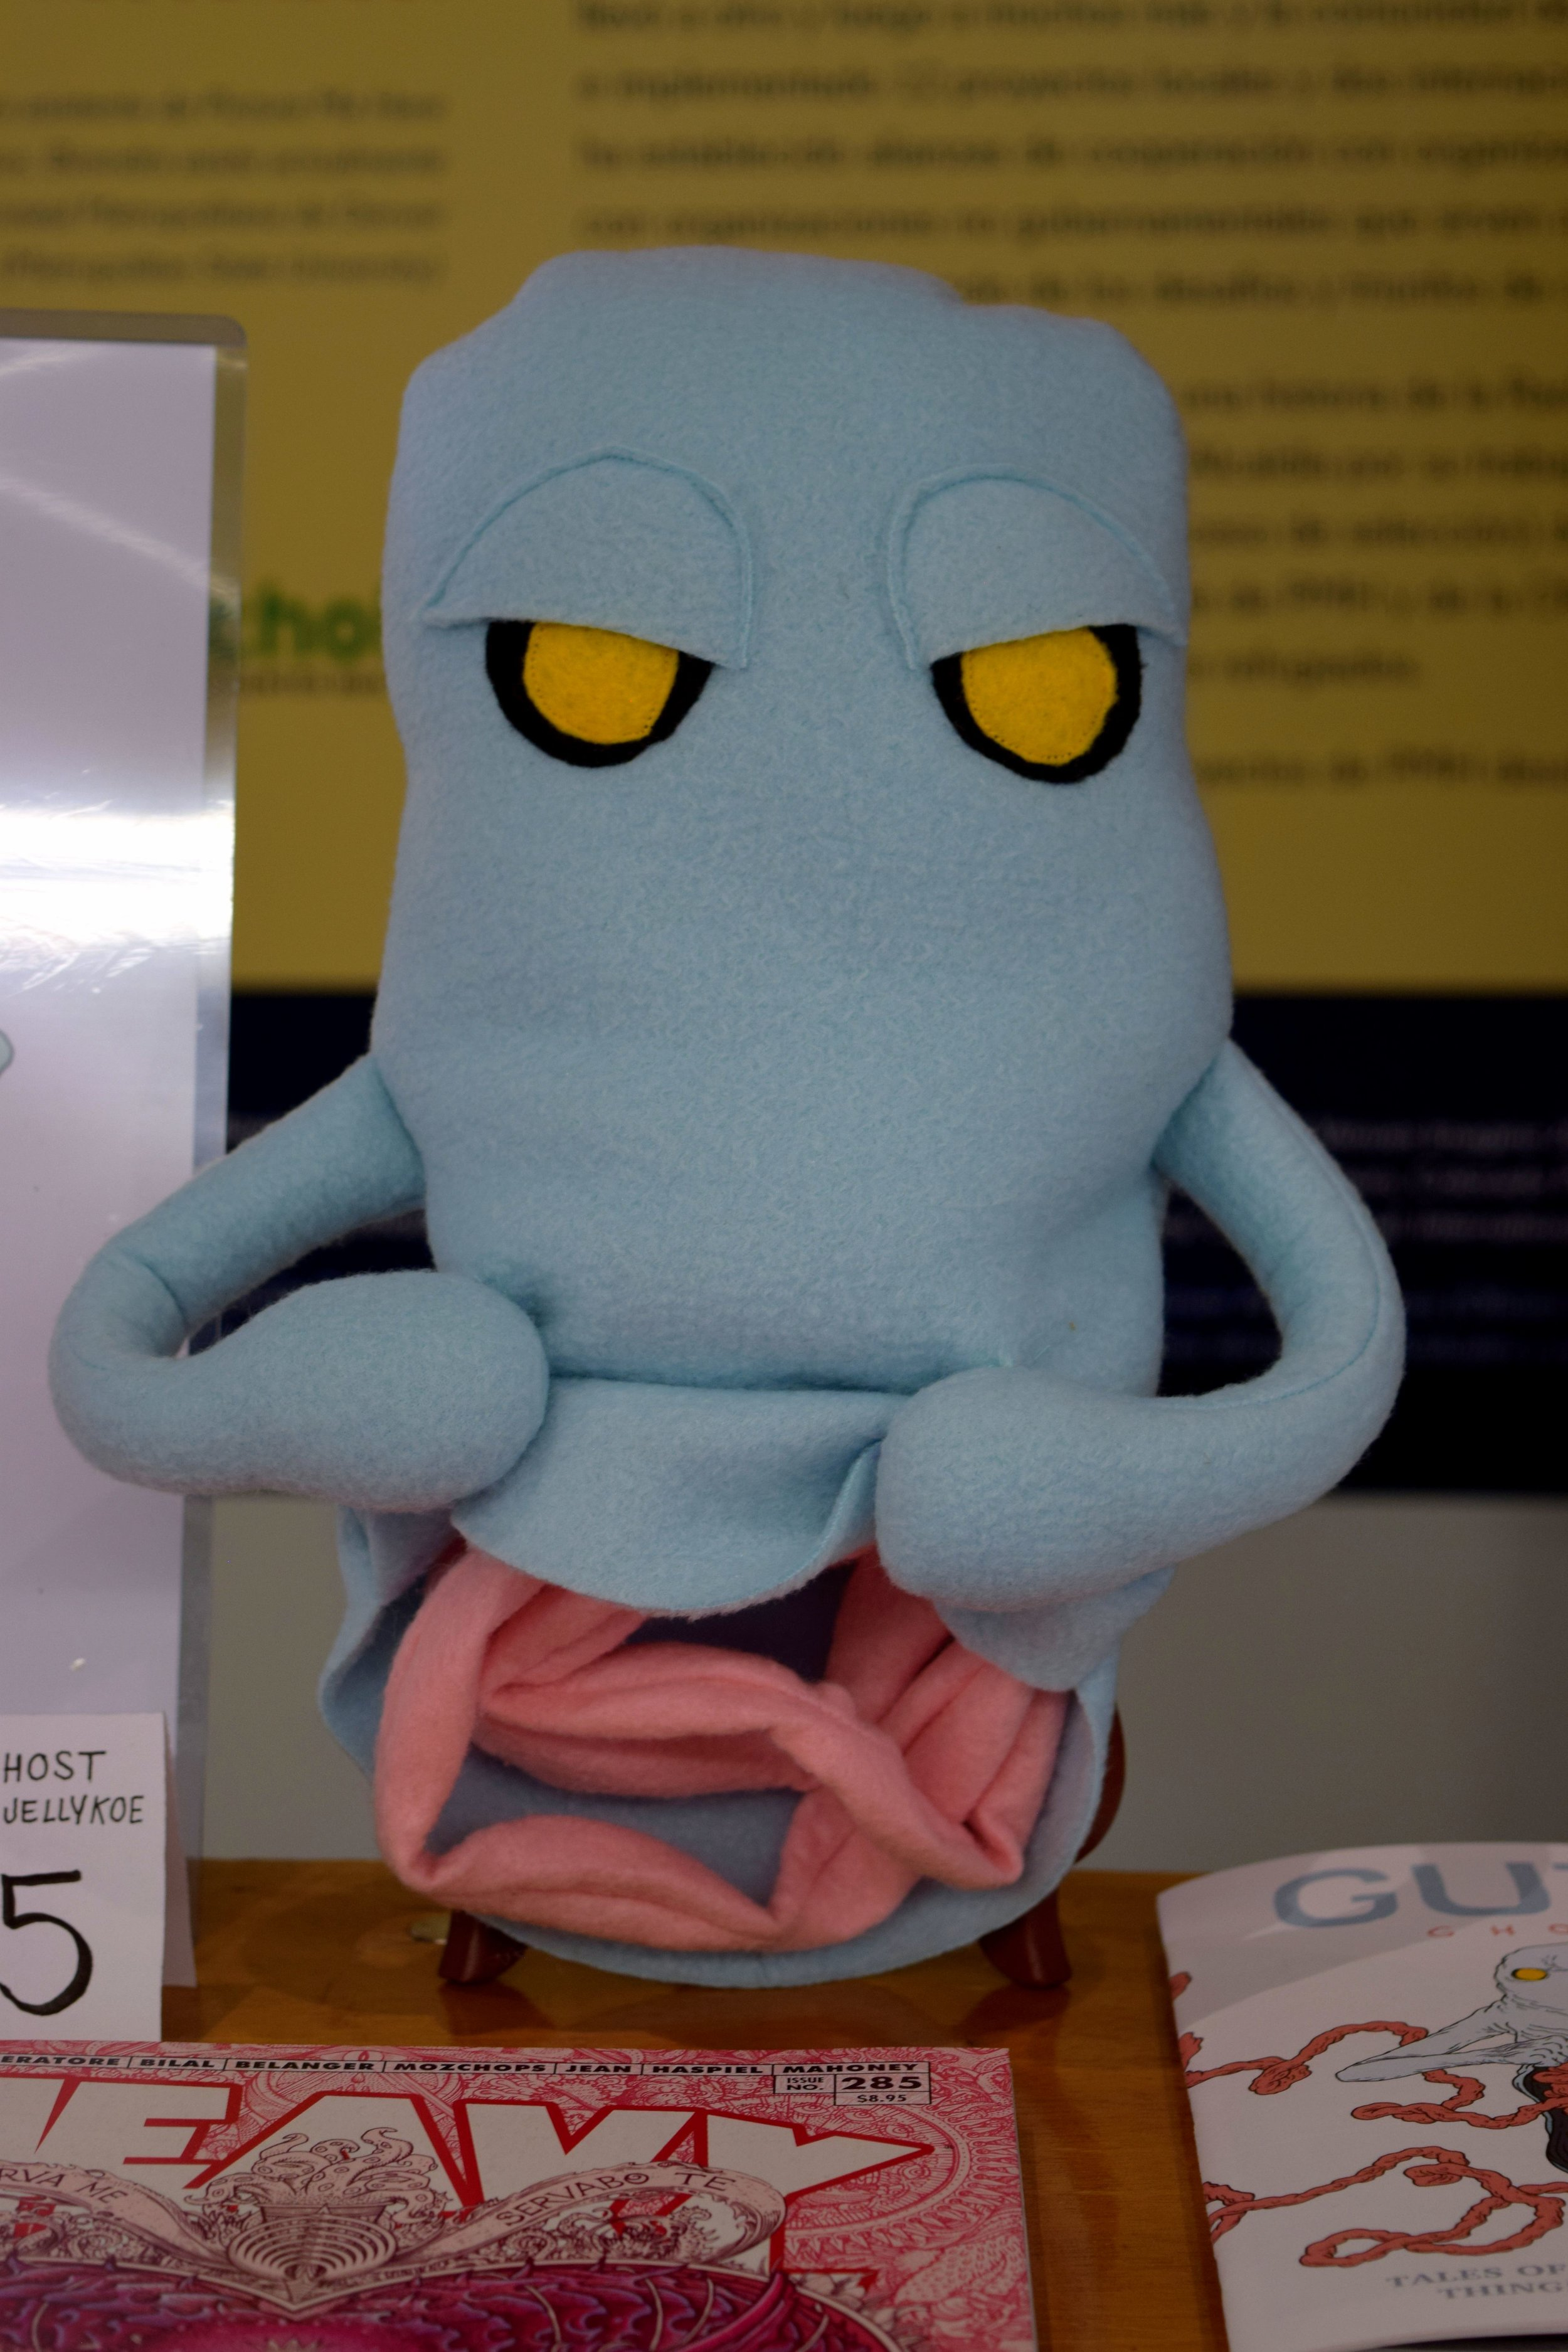 Gutt Ghost plush doll at DINK 207.